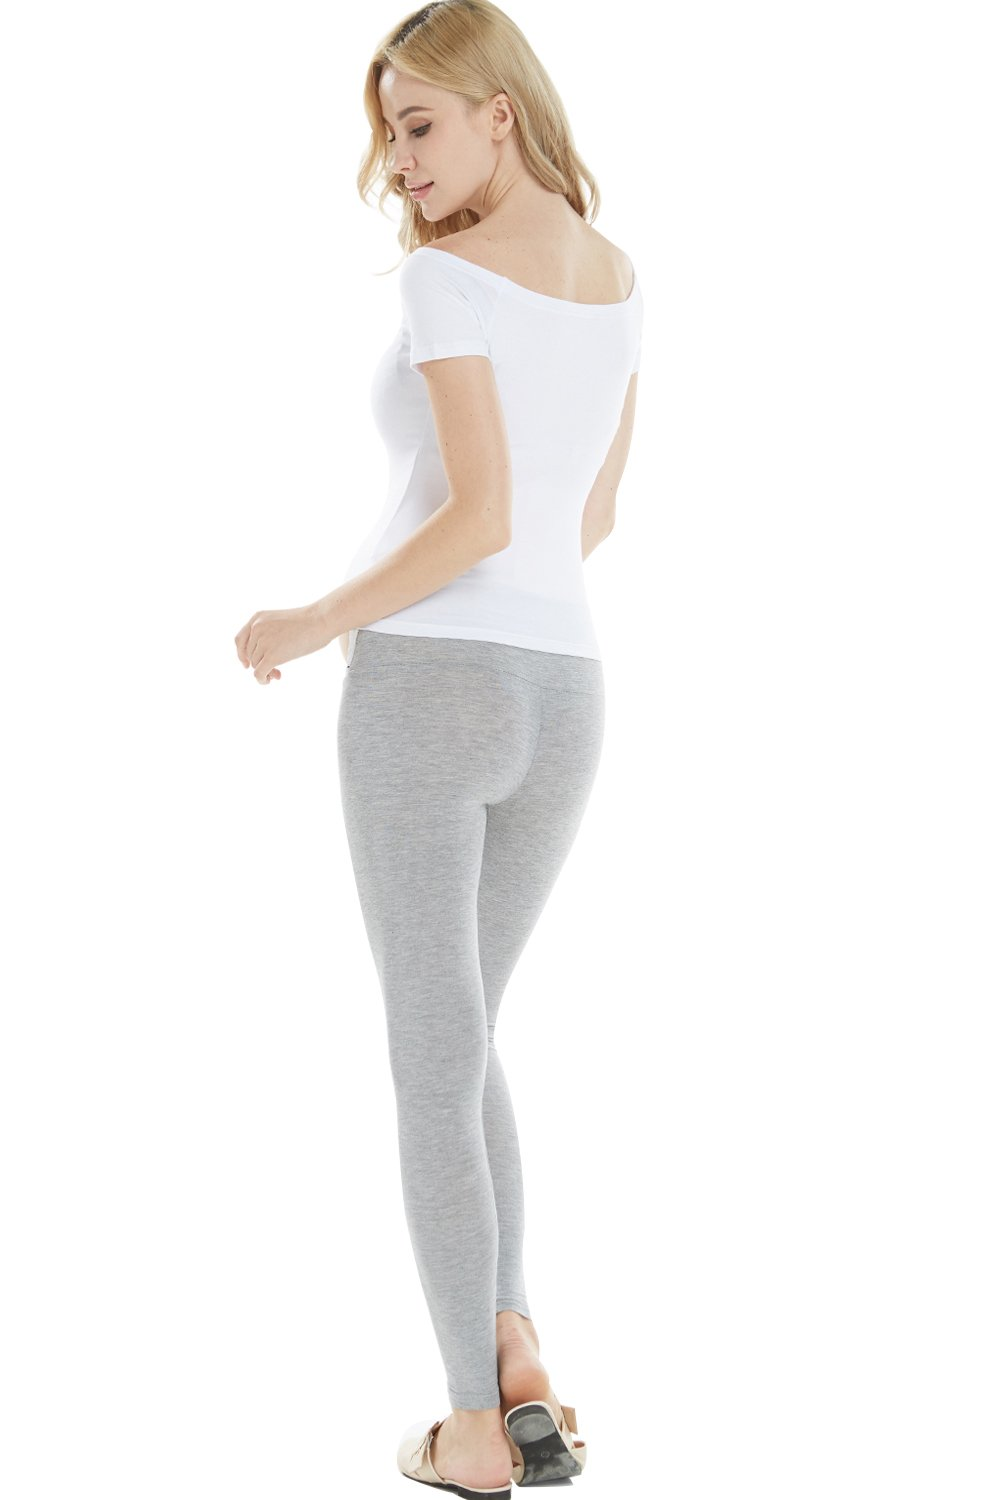 Cozyonme Maternity Pants Leggings Pregnancy Support Jeggings Capris Yoga Tights (Grey, XX-Large) by Cozyonme (Image #5)